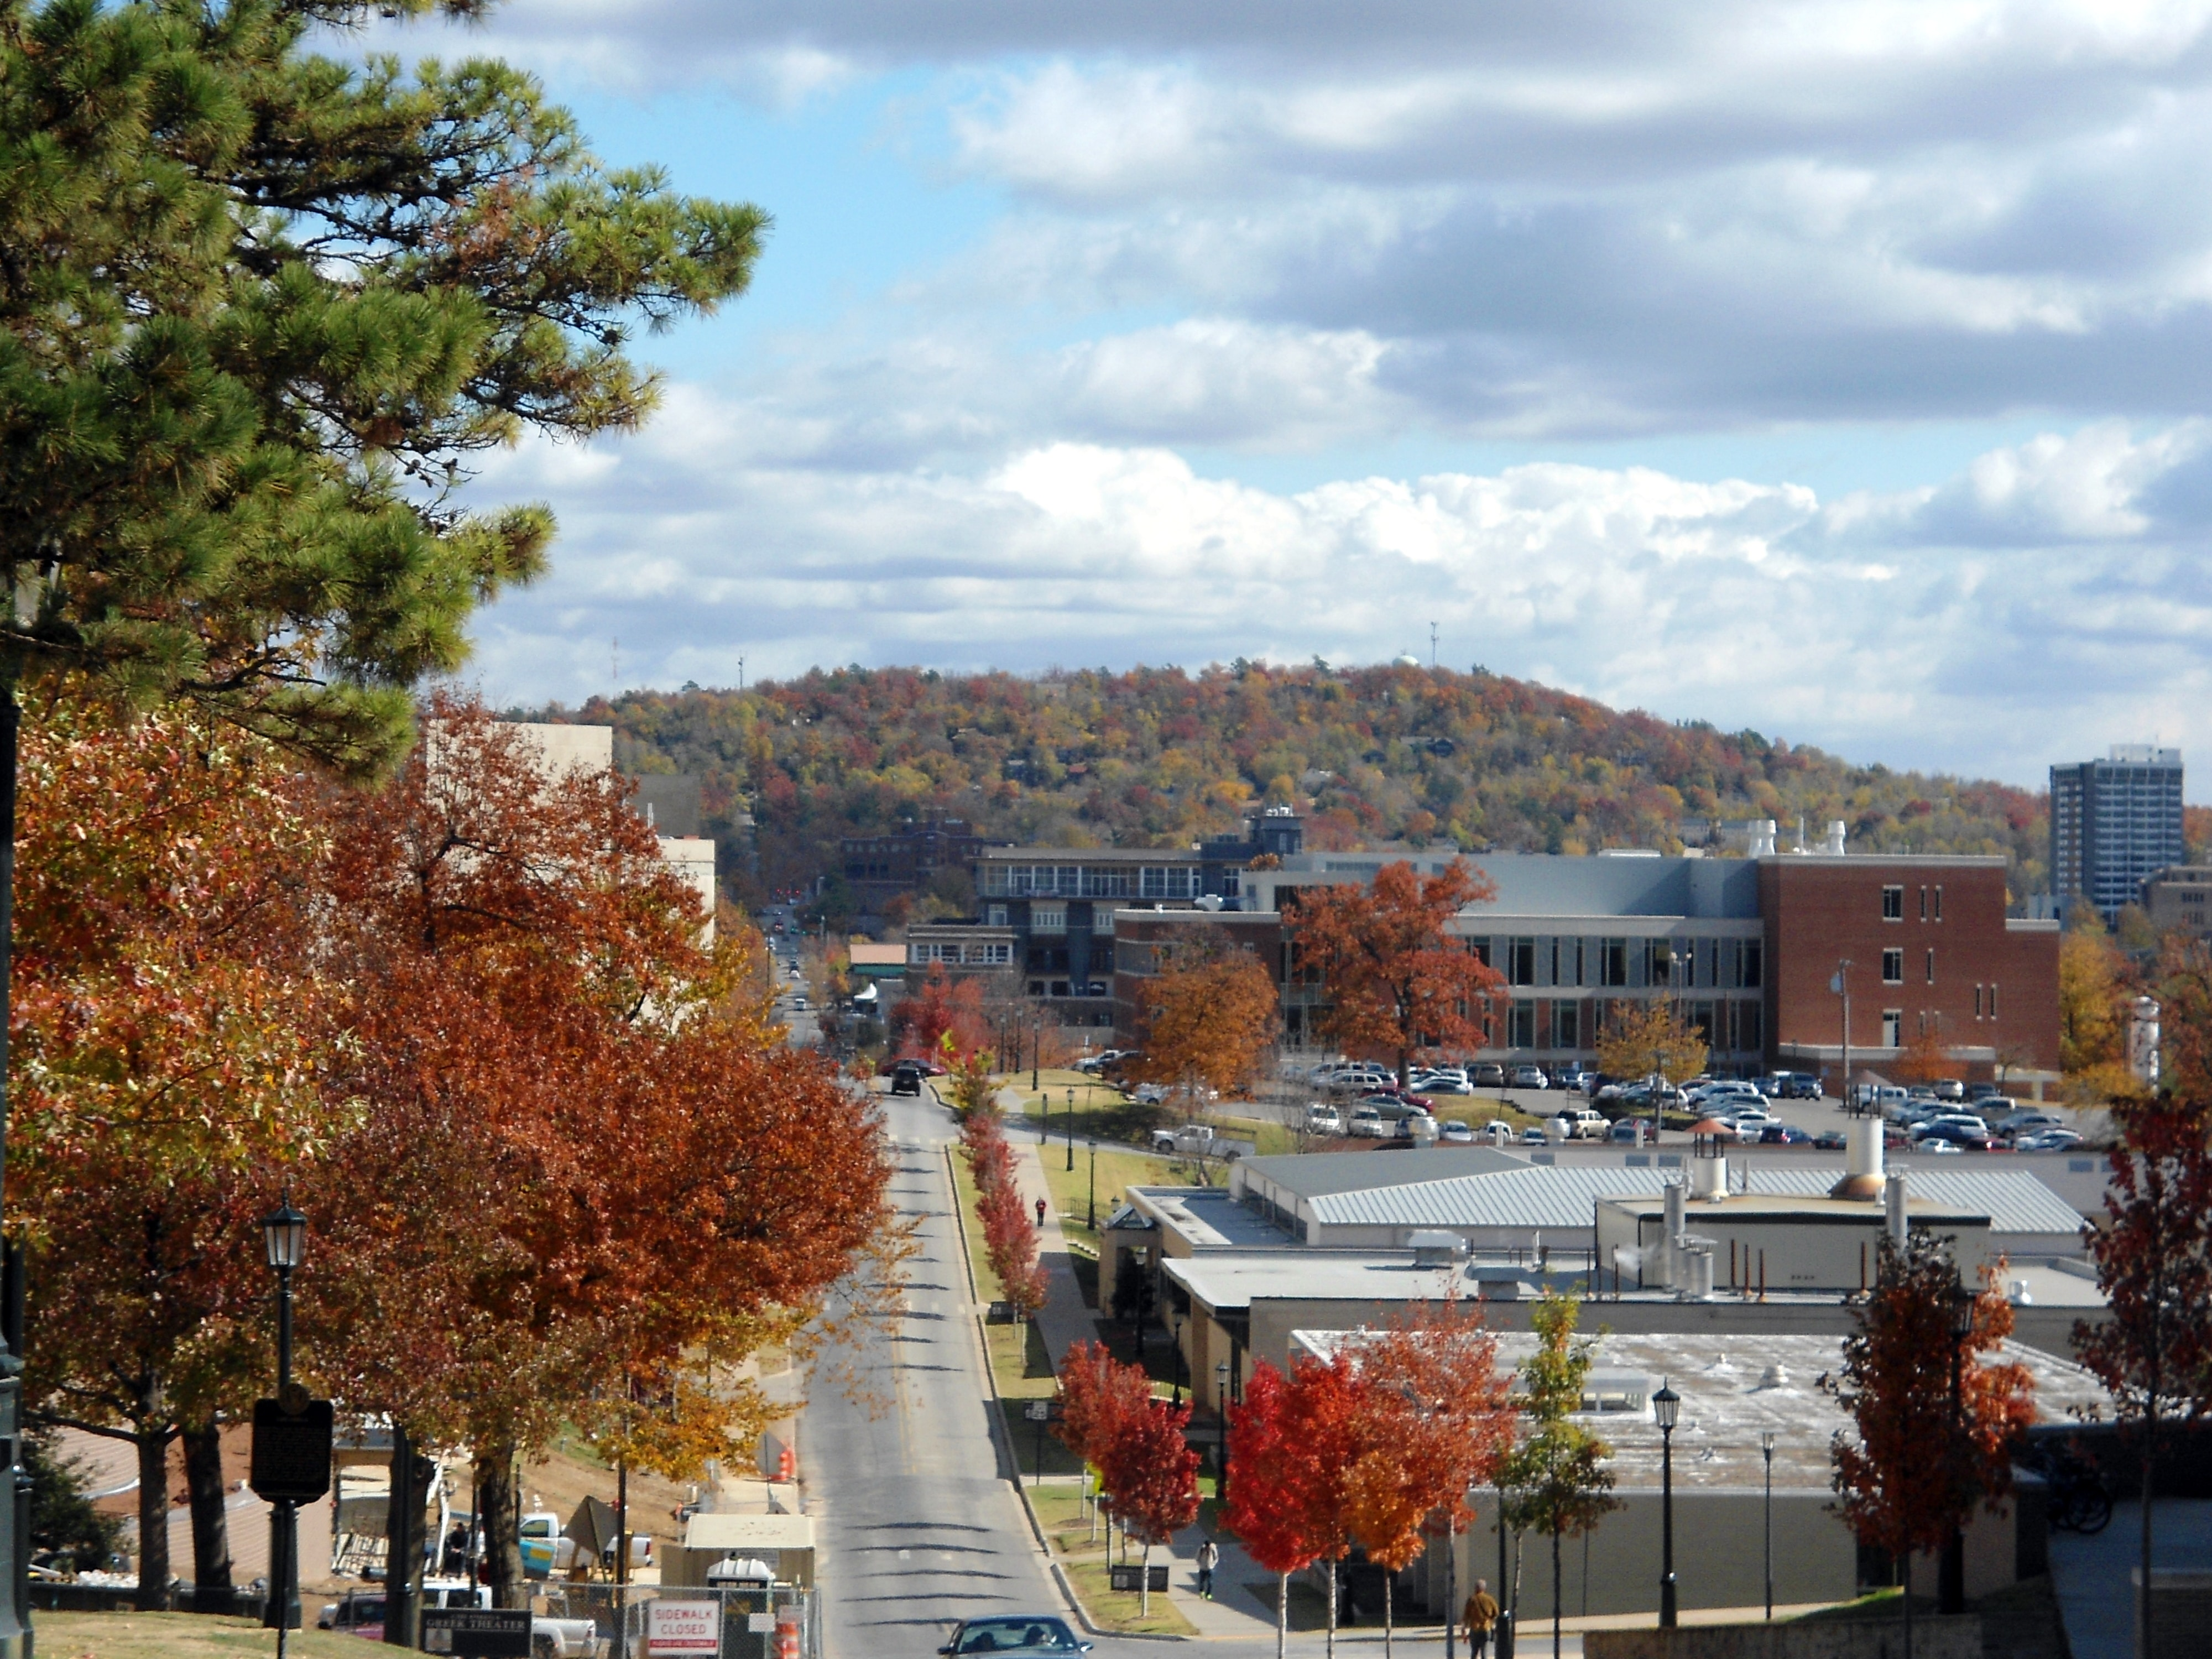 Mount_Sequoyah_and_Fayetteville_from_University_of_Arkansas